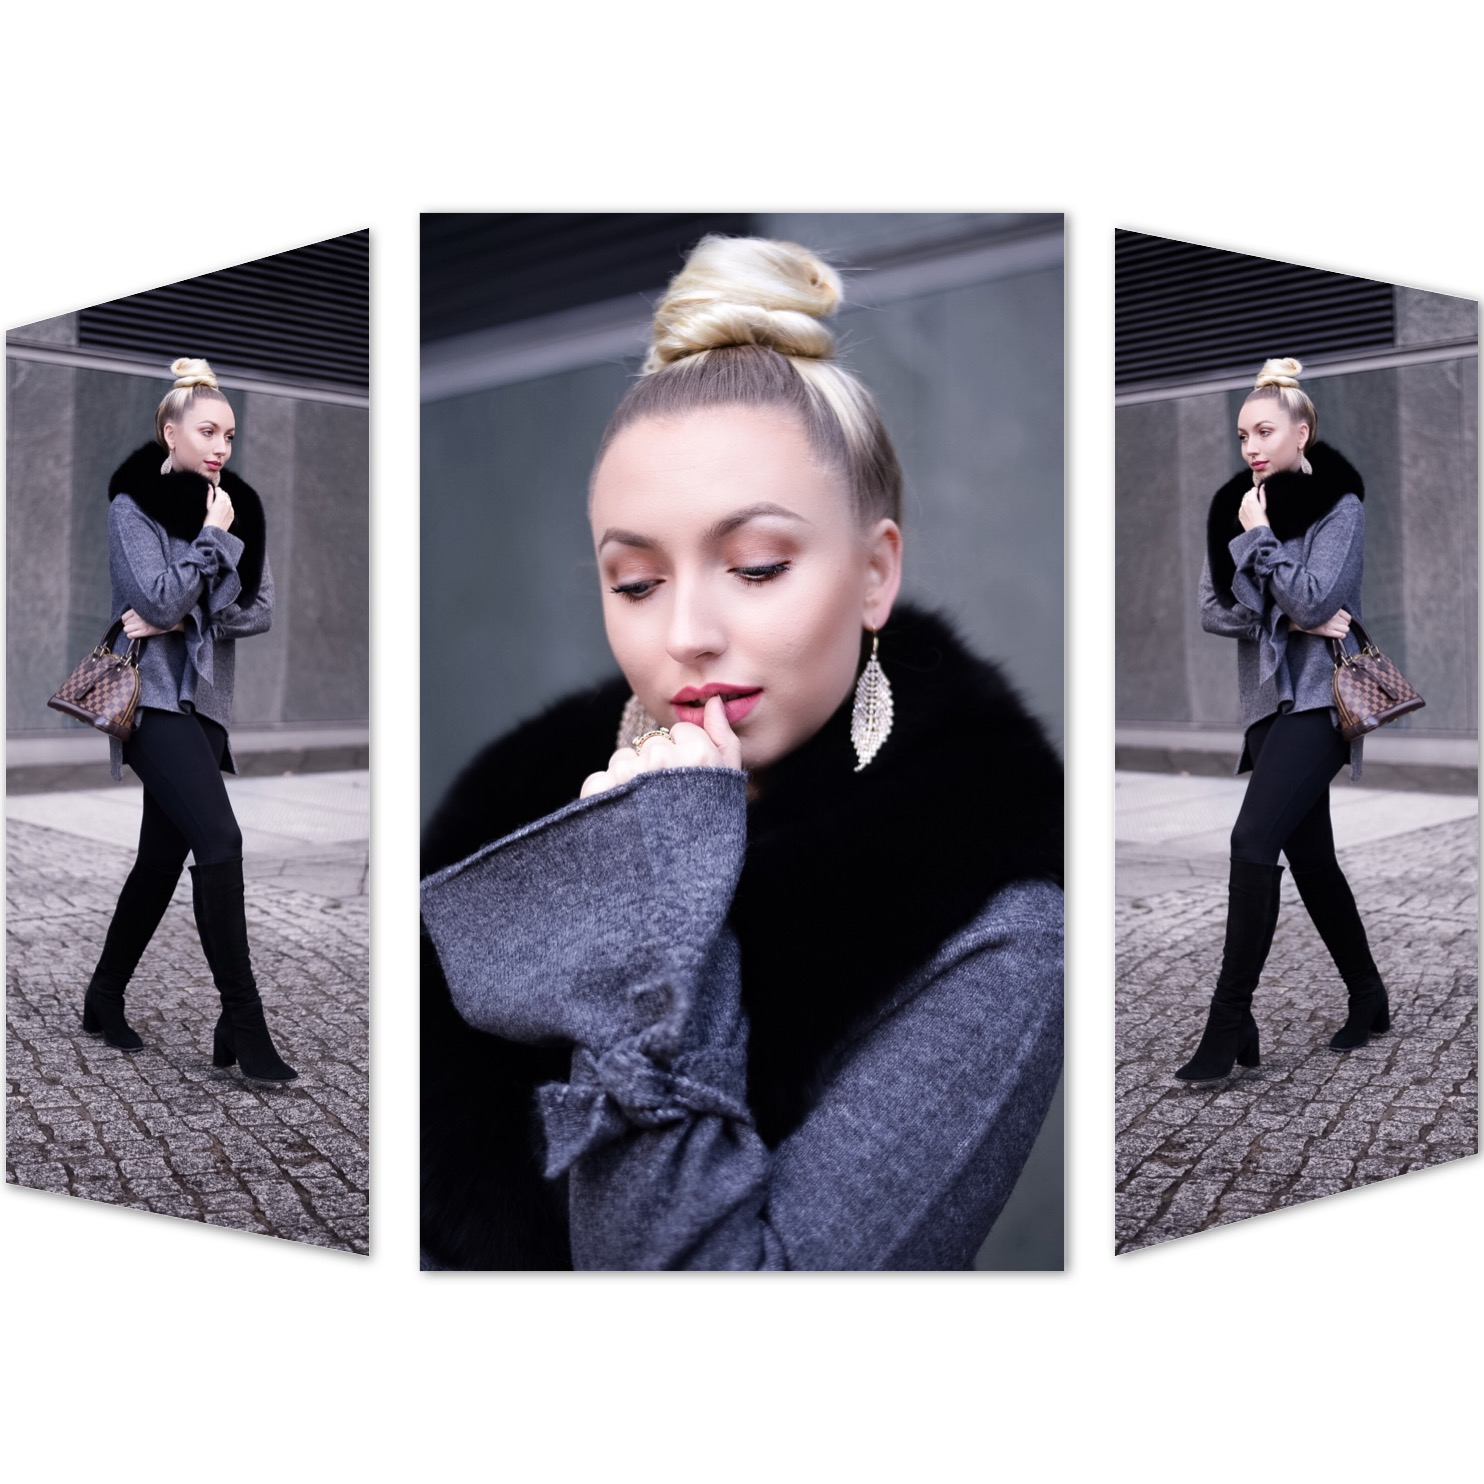 high bun_top bun_portrait_blonde girl_polish girl_fashionblogger germany_knee high boots